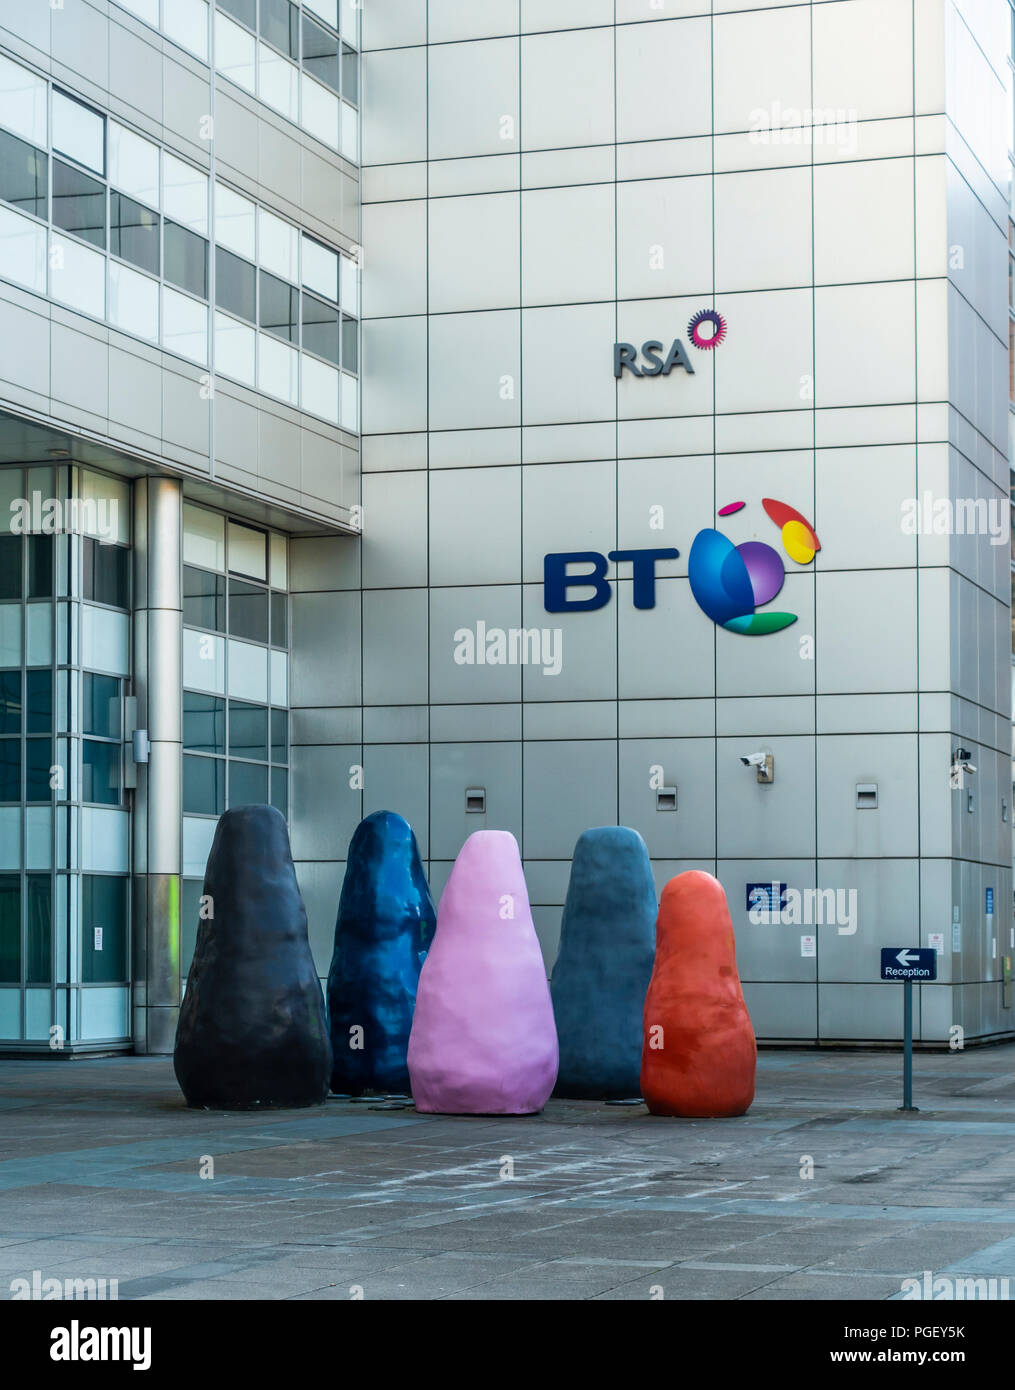 Entrance to the BT building in Atlantic Quay, Glasgow, featureing a modern sculpture. - Stock Image